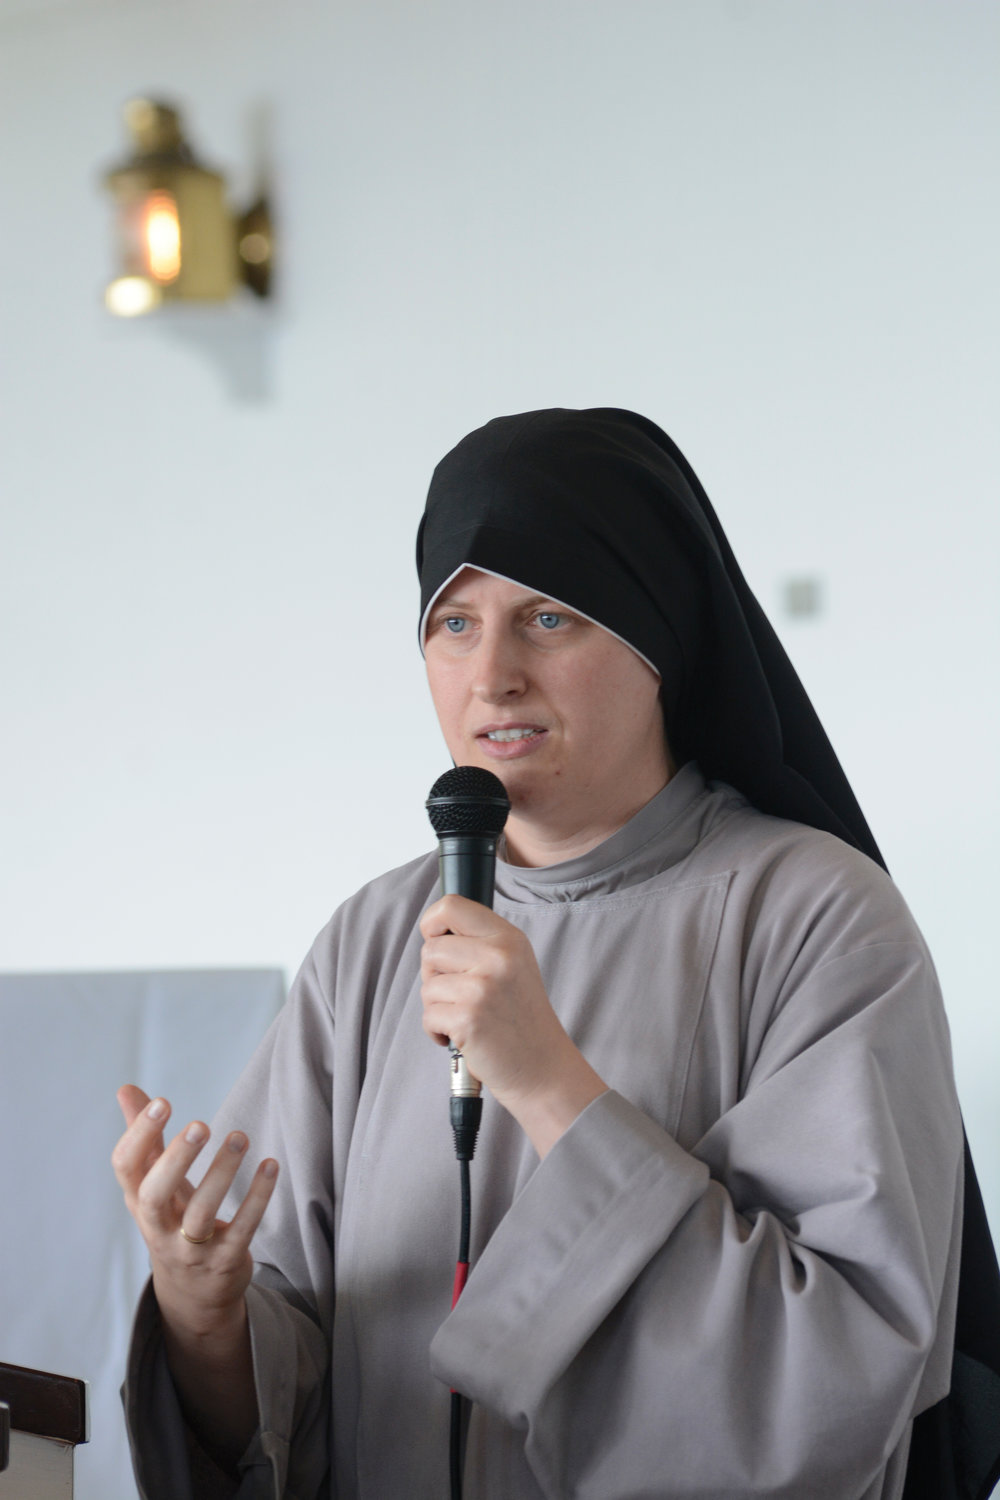 Sister Maria Teresa, C.F.R., local servant (superior) of the Franciscan Sisters of the Renewal in East Harlem, shares the story of her spiritual journey.